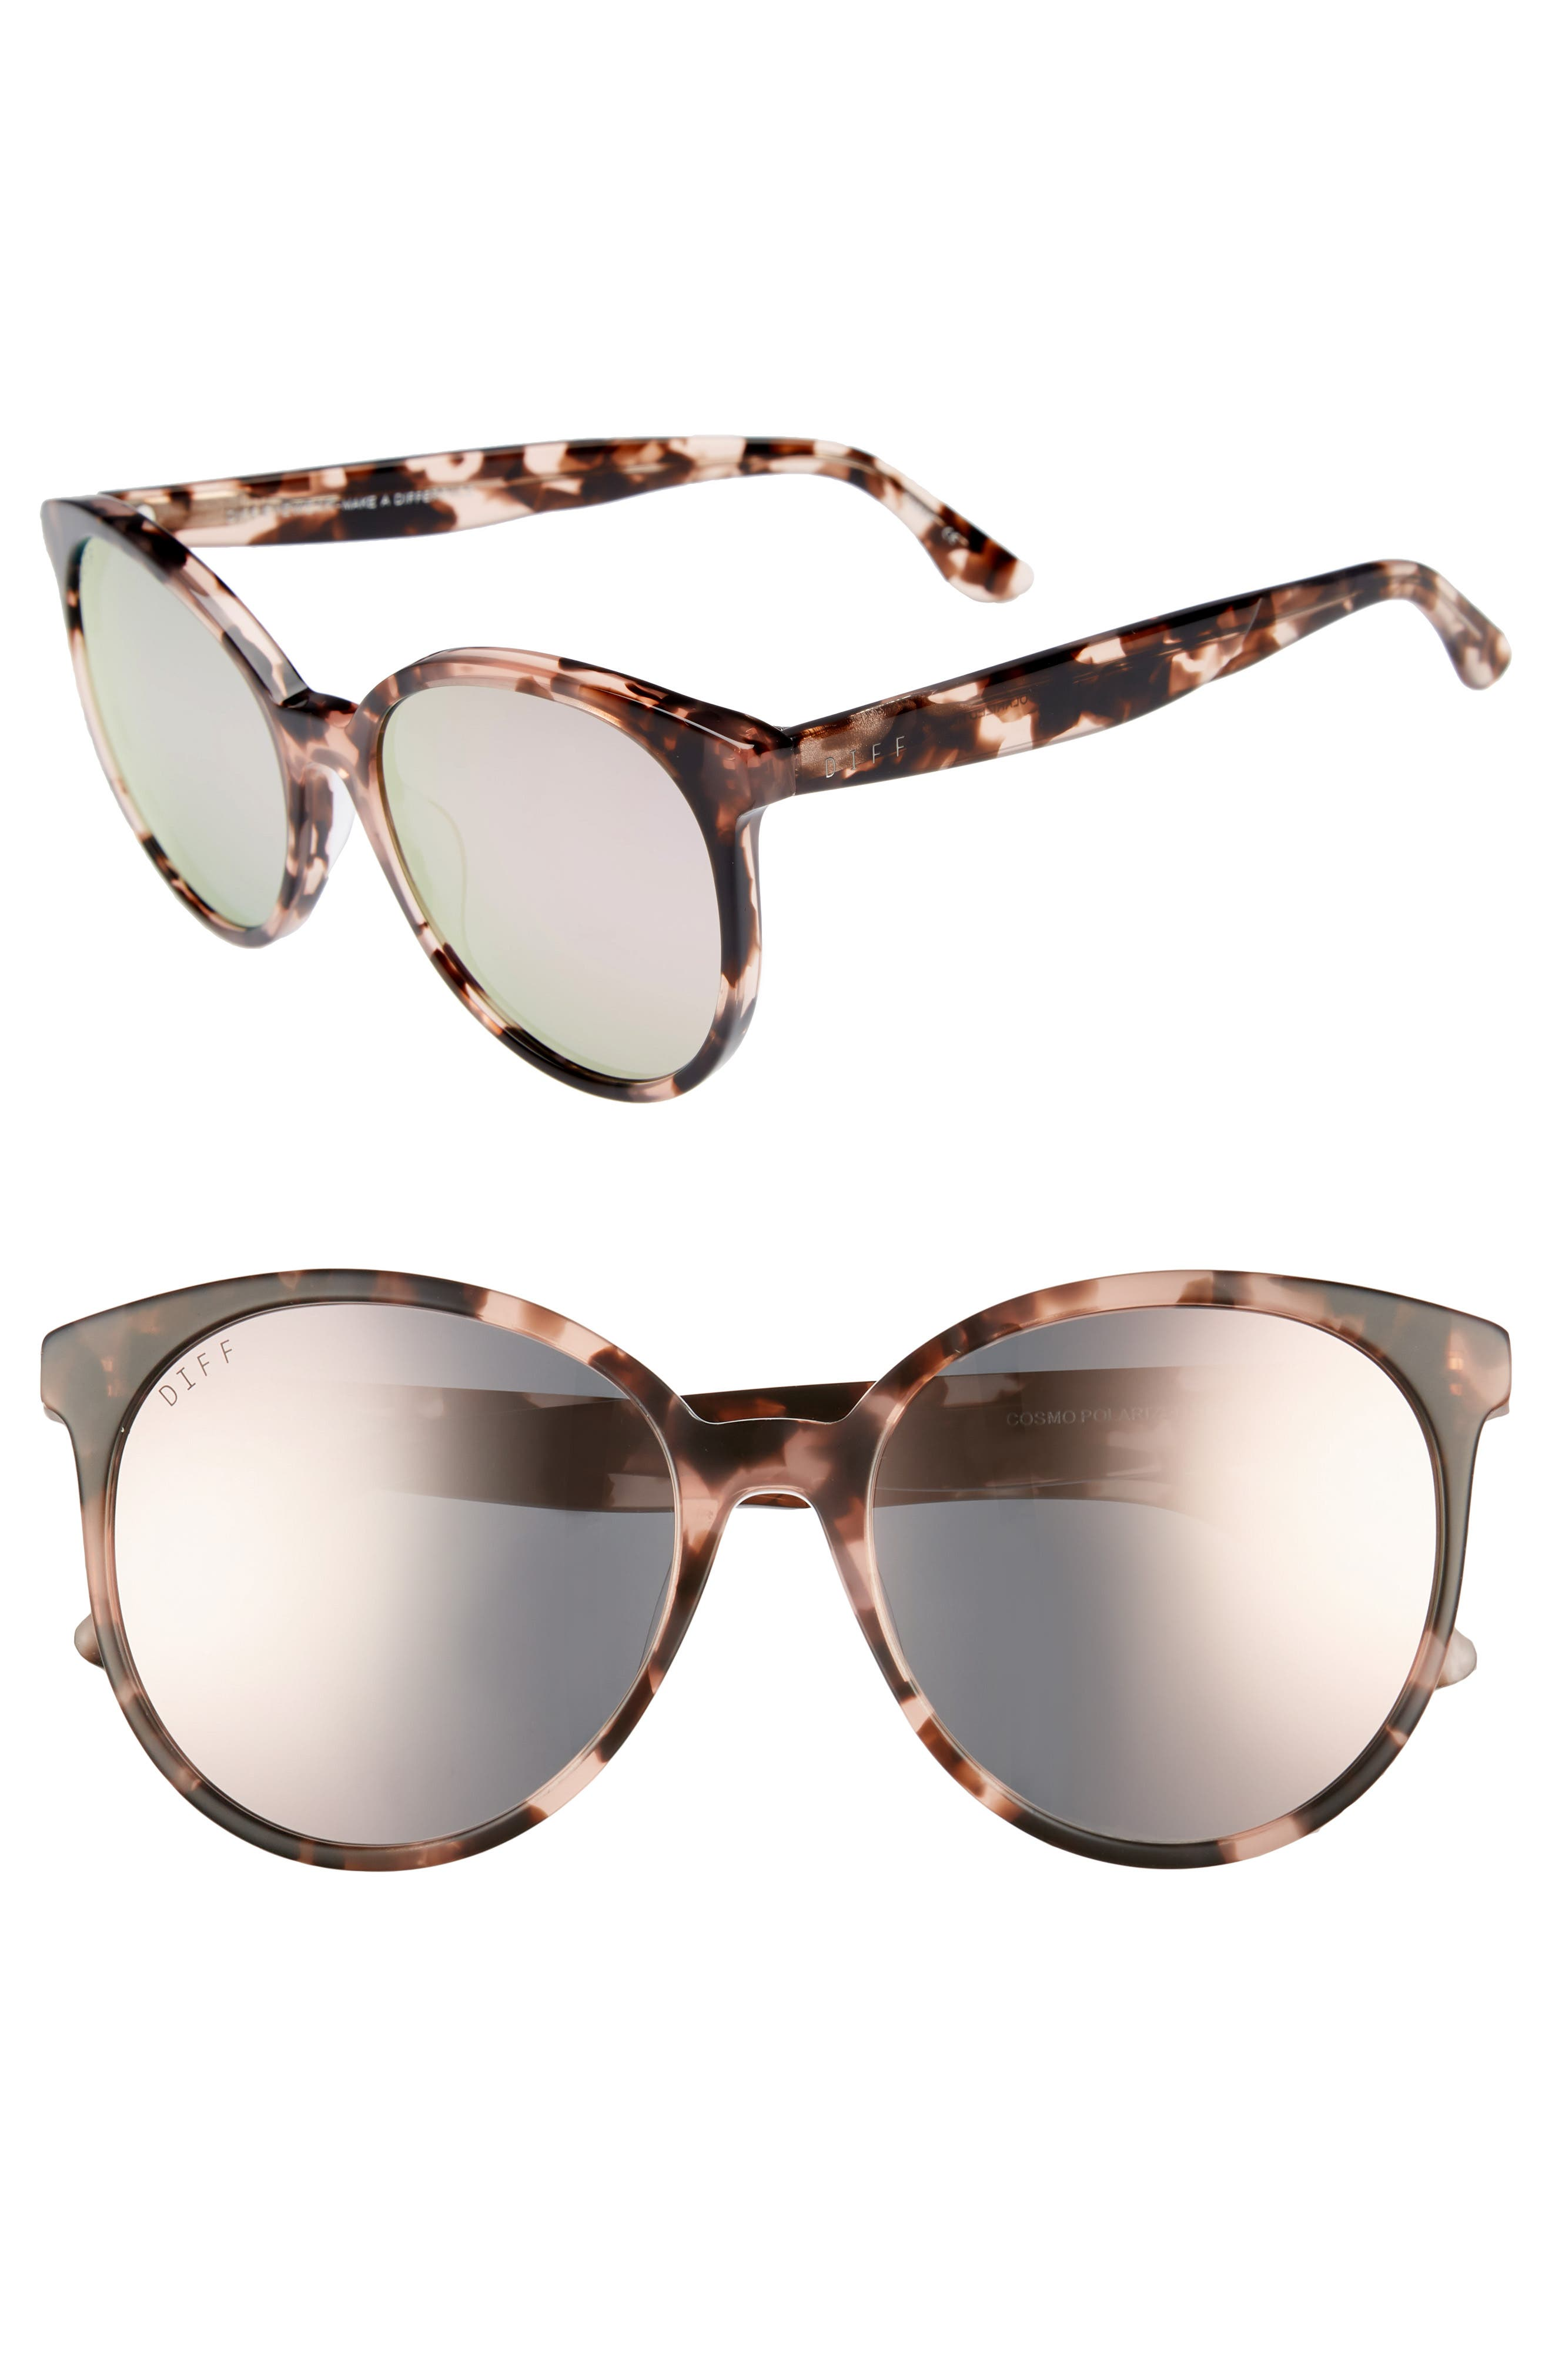 Cosmo 56mm Polarized Round Sunglasses,                         Main,                         color, HIMALAYAN TORTOISE/ TAUPE